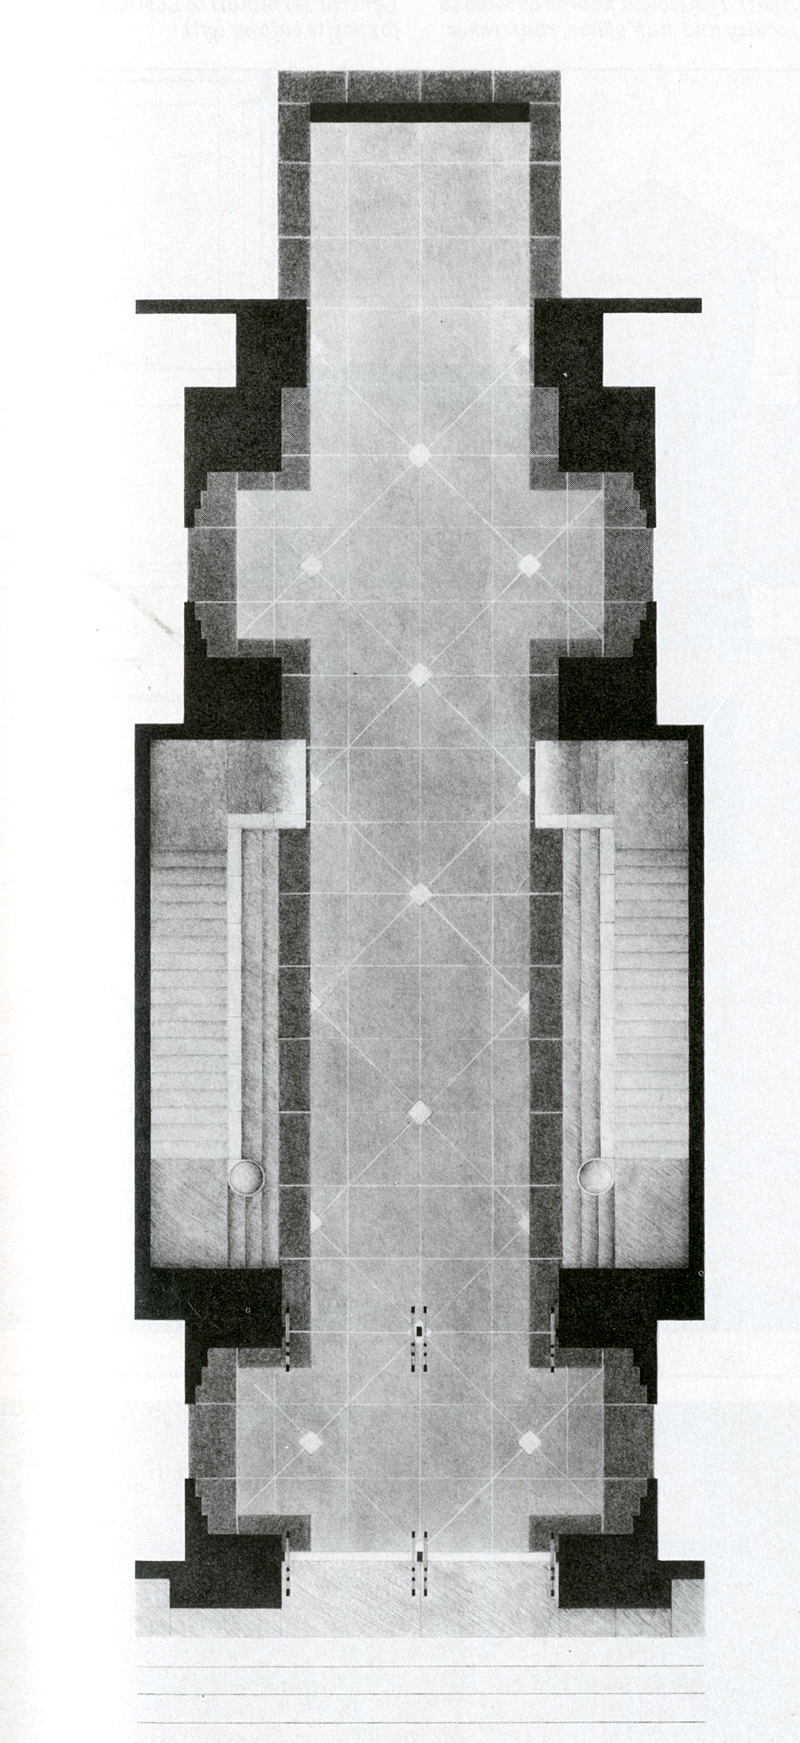 Peter L Gluck. Architectural Record 174 April 1986, 123